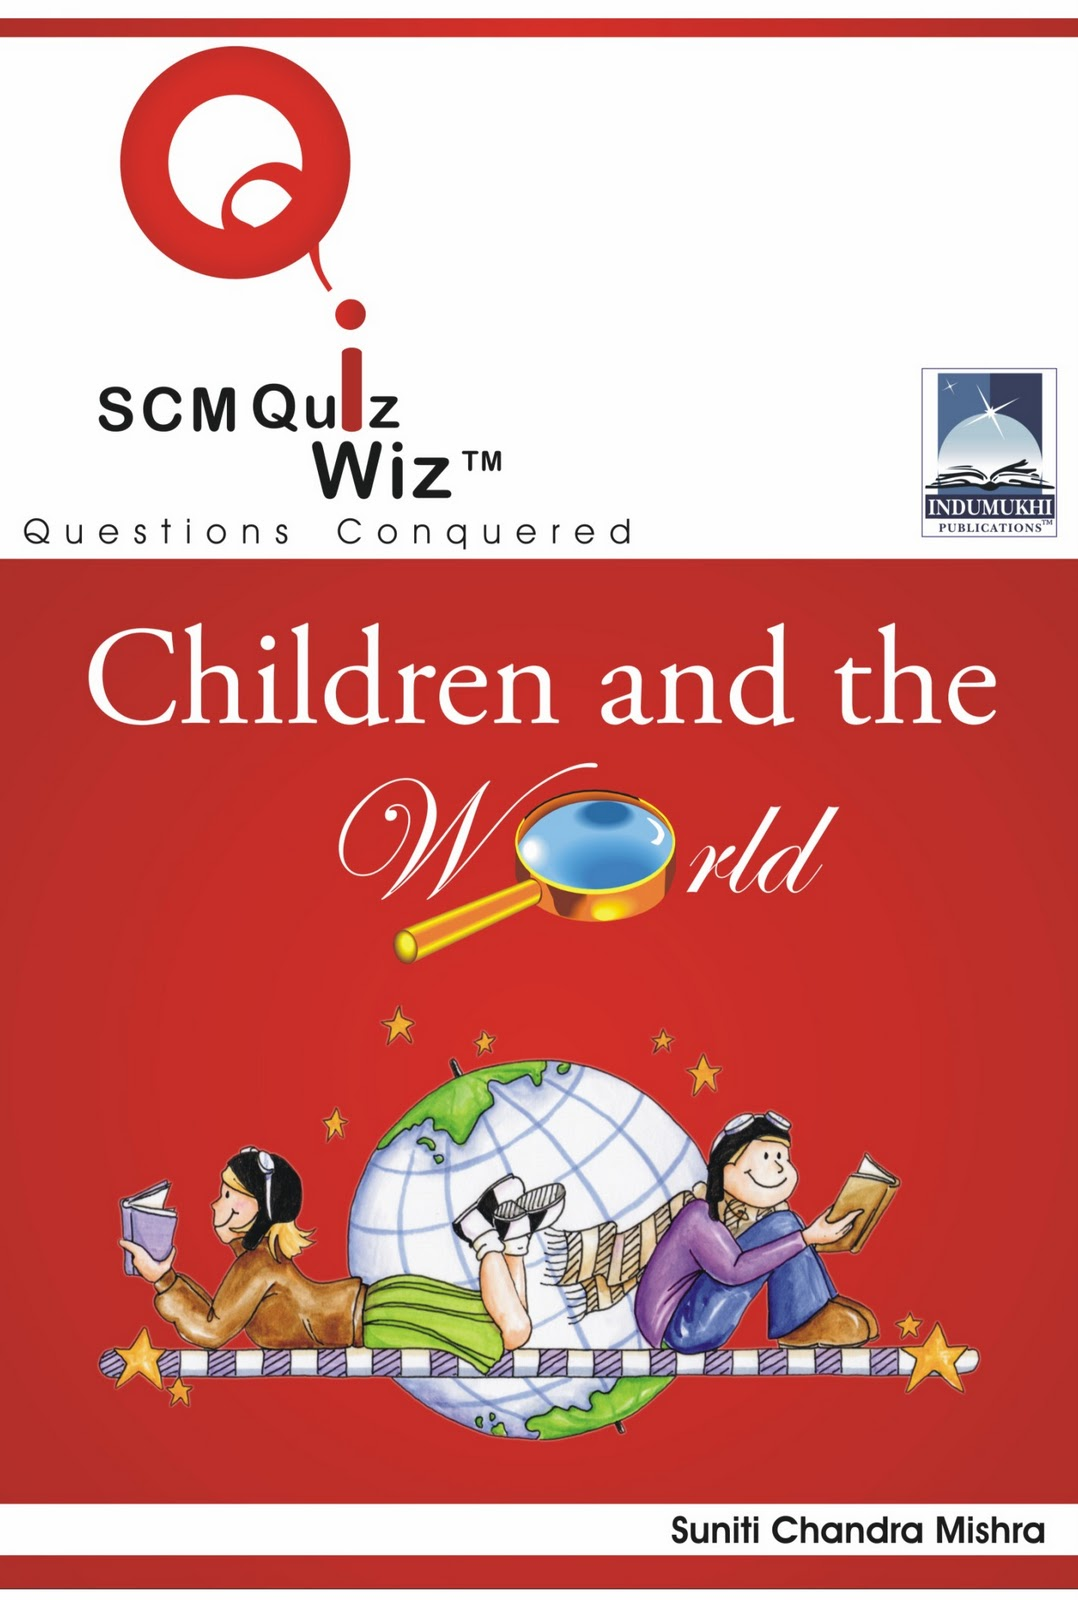 Children S Book Cover Quiz : Indumukhi publications scm quiz wiz children and the world